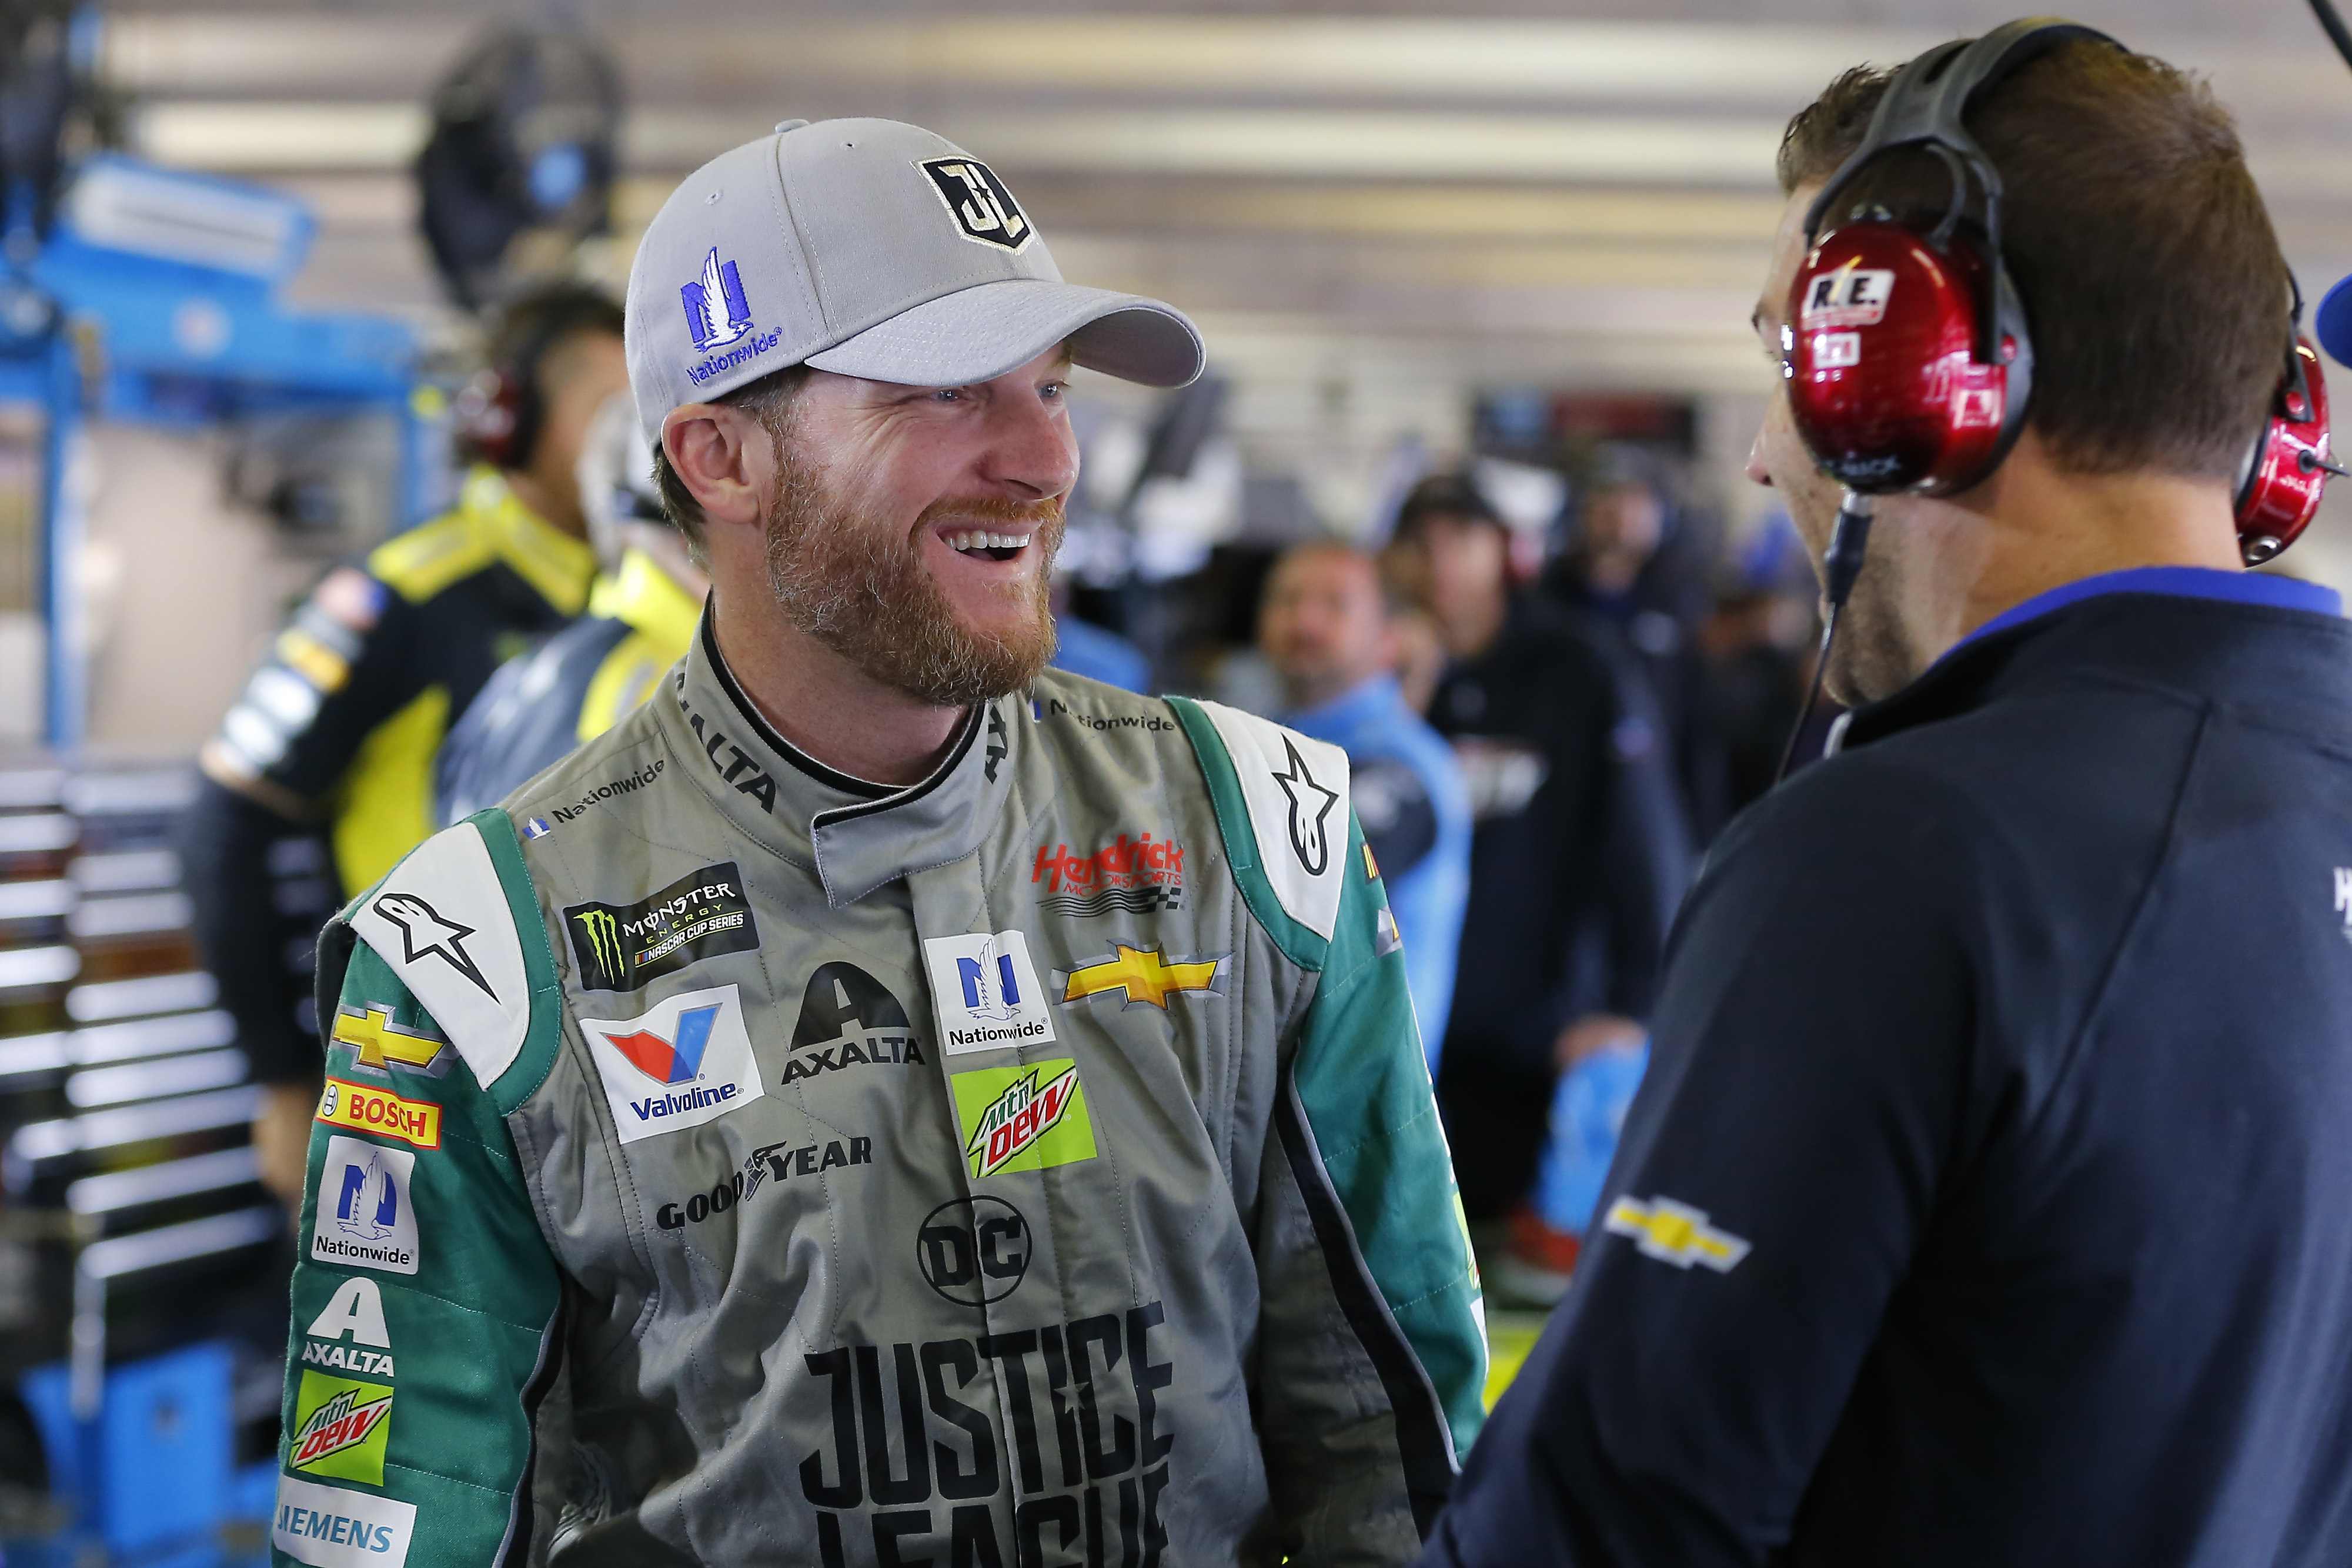 5a1f2b17 CONCORD, N.C. -- Over the weekend, Nationwide, NASCAR and Chevrolet all  shared videos showcasing their appreciation -- or #appreci88ion -- of Dale  Earnhardt ...